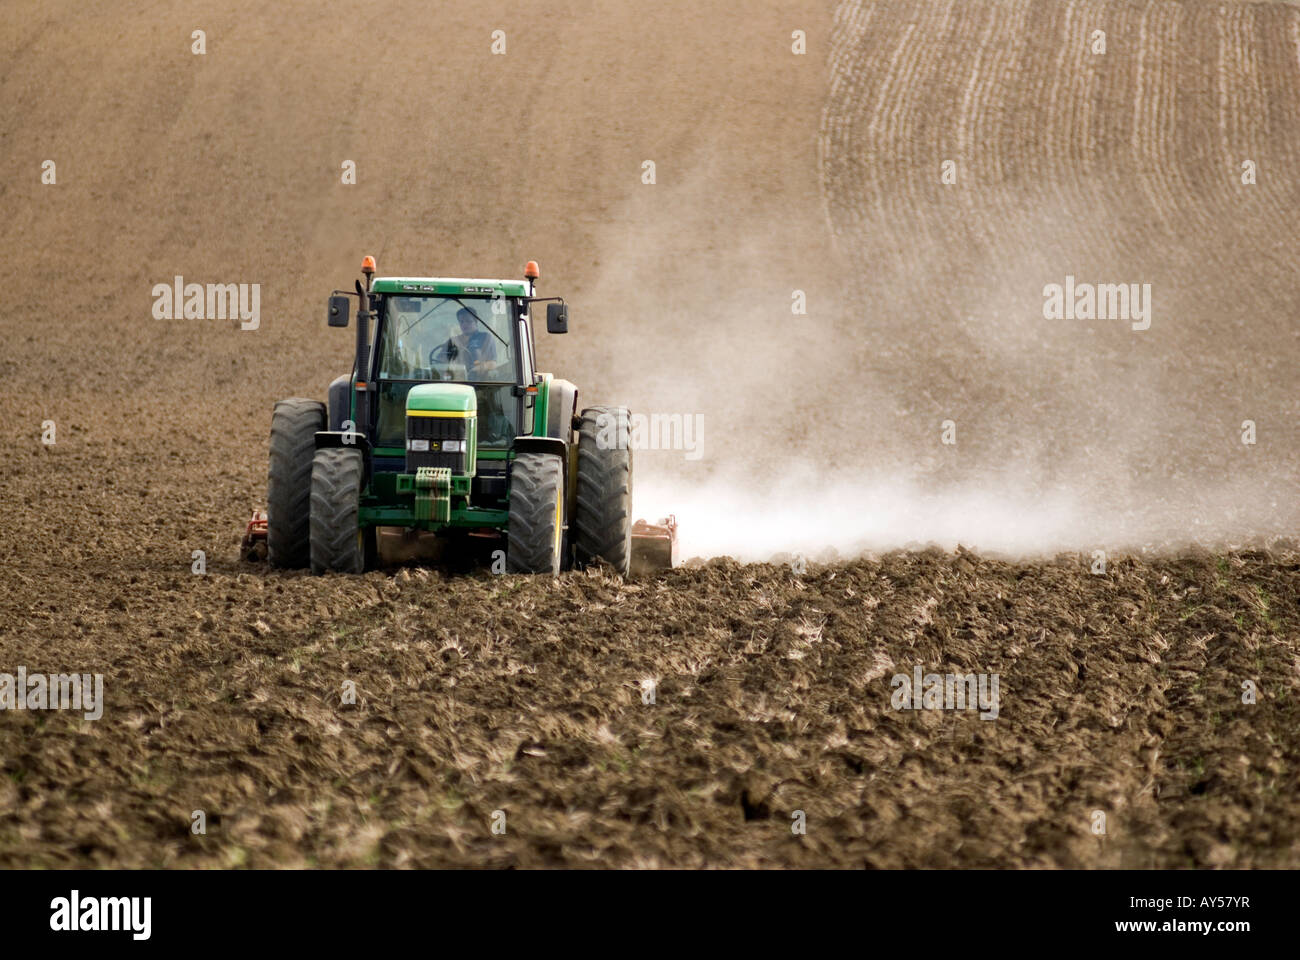 Doug Blane Tractor plowing a field in Oxfordshire near the Oxford Canal Stock Photo